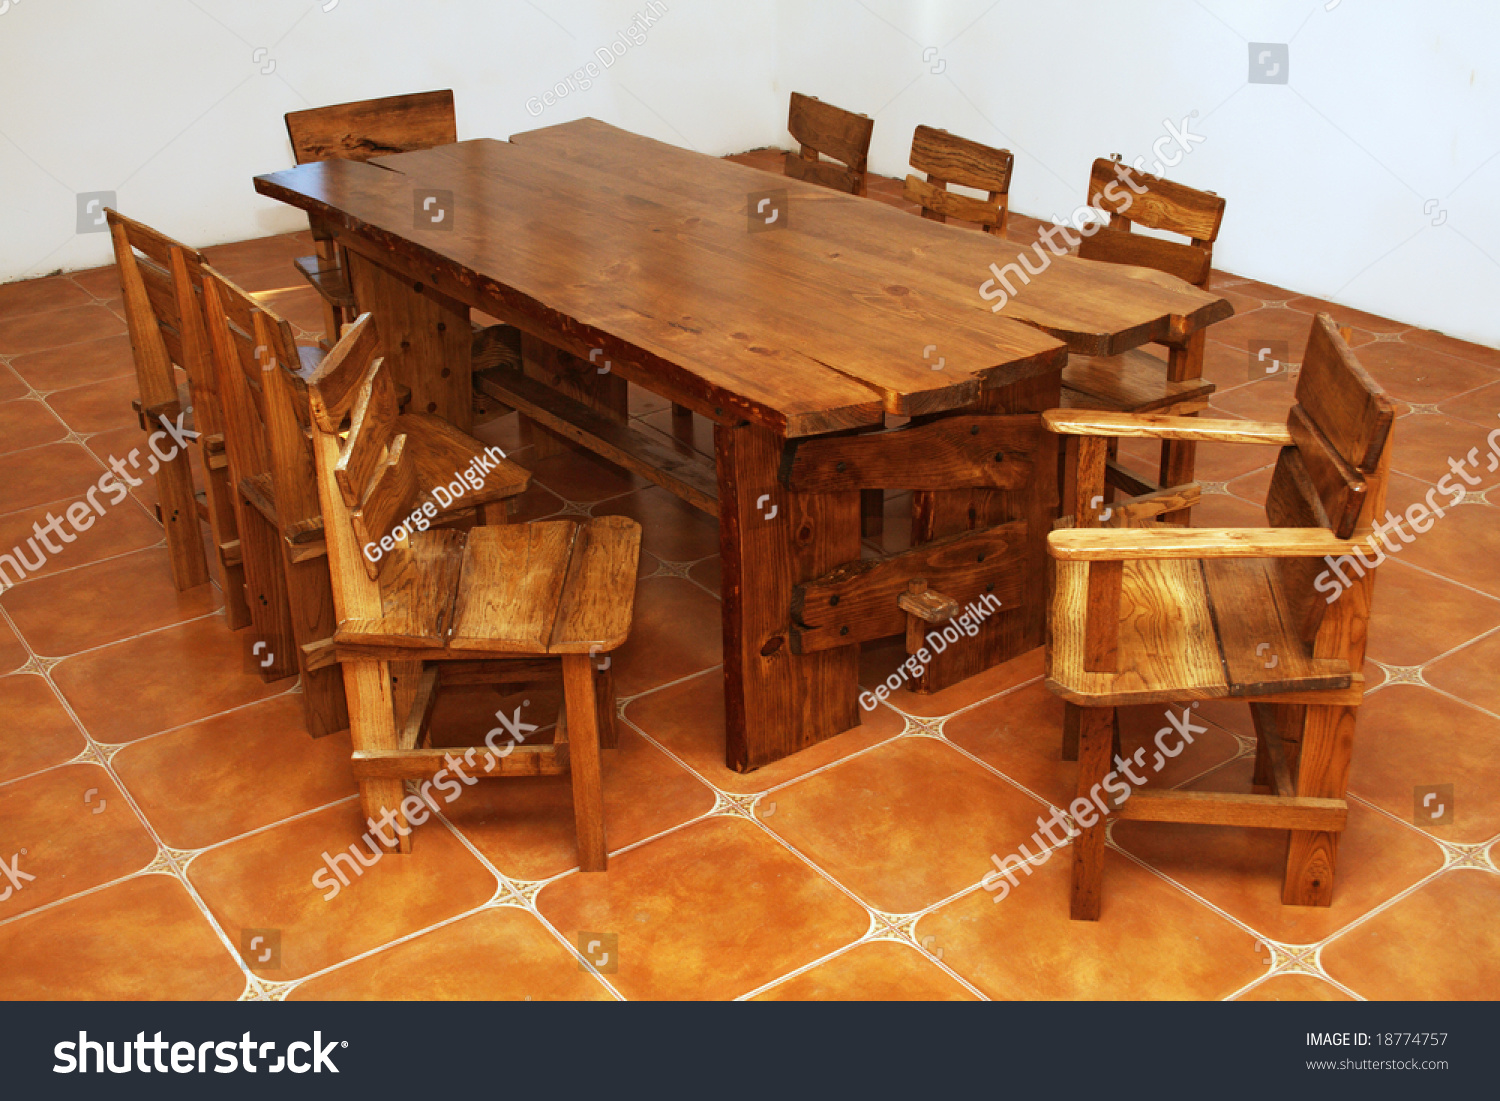 stock photo handmade large kitchen table large kitchen tables Handmade large kitchen table Preview Save to a lightbox